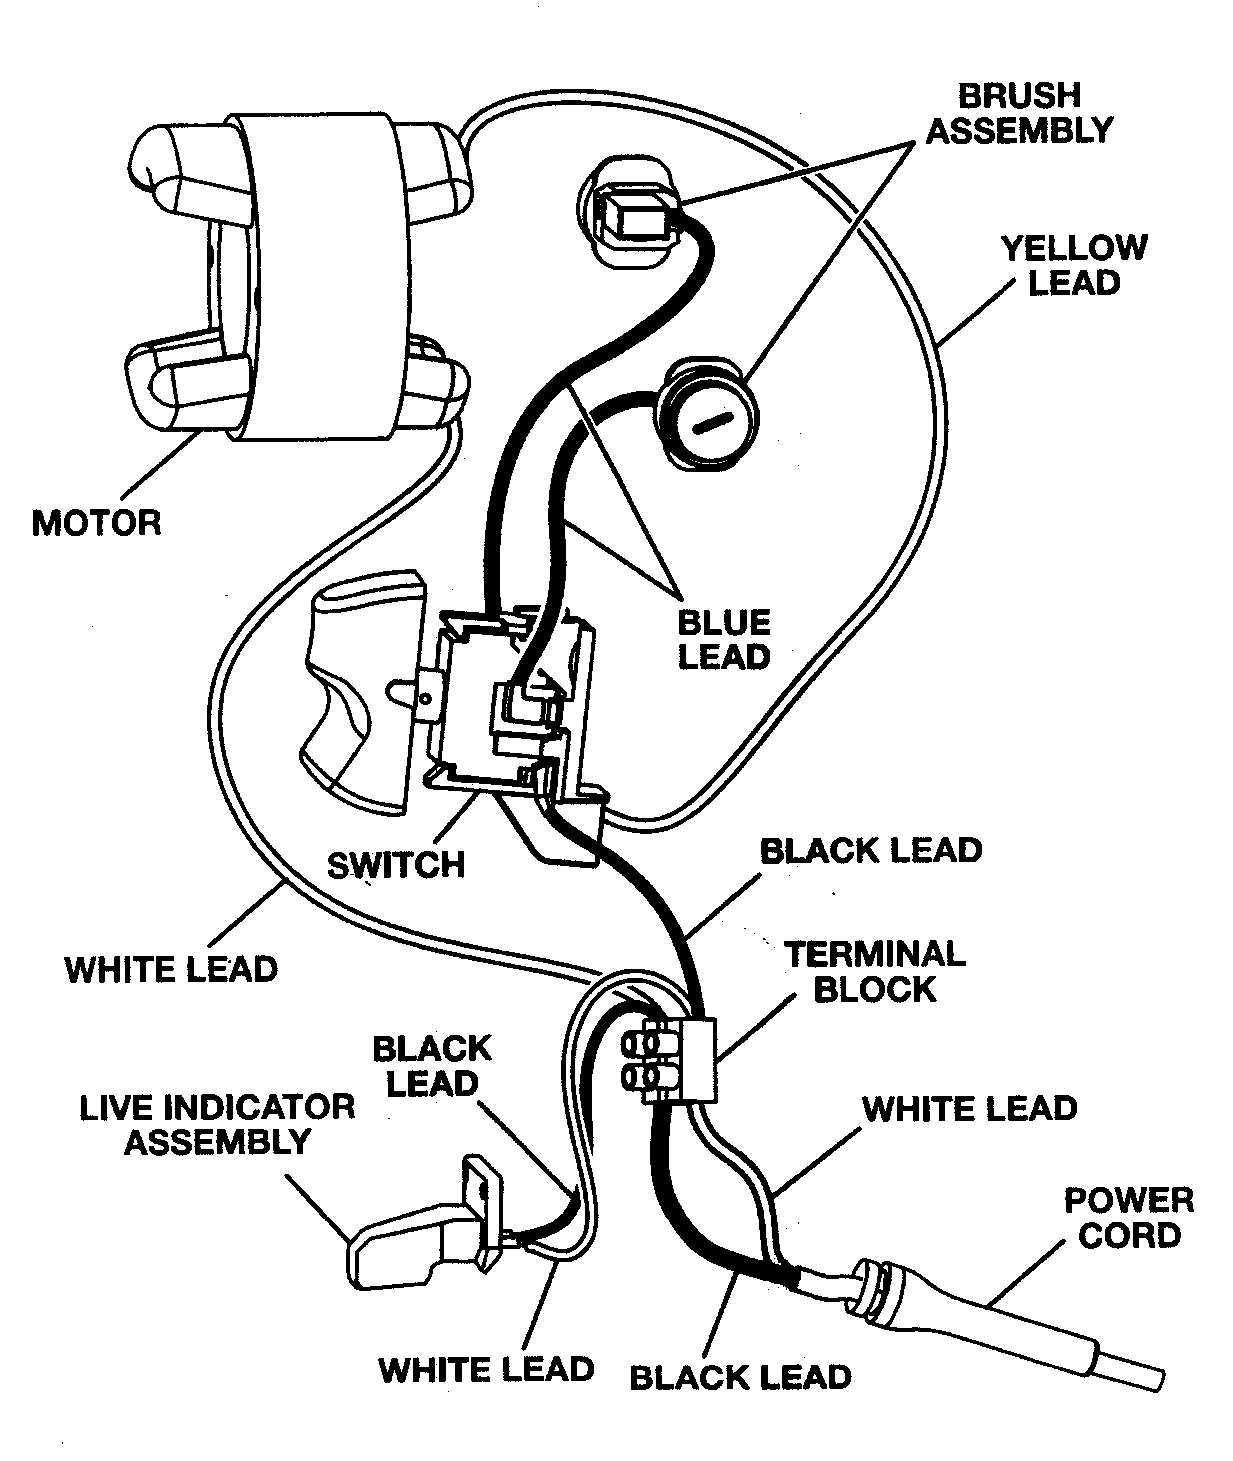 Lovely snapper riding mower wiring diagram pictures inspiration